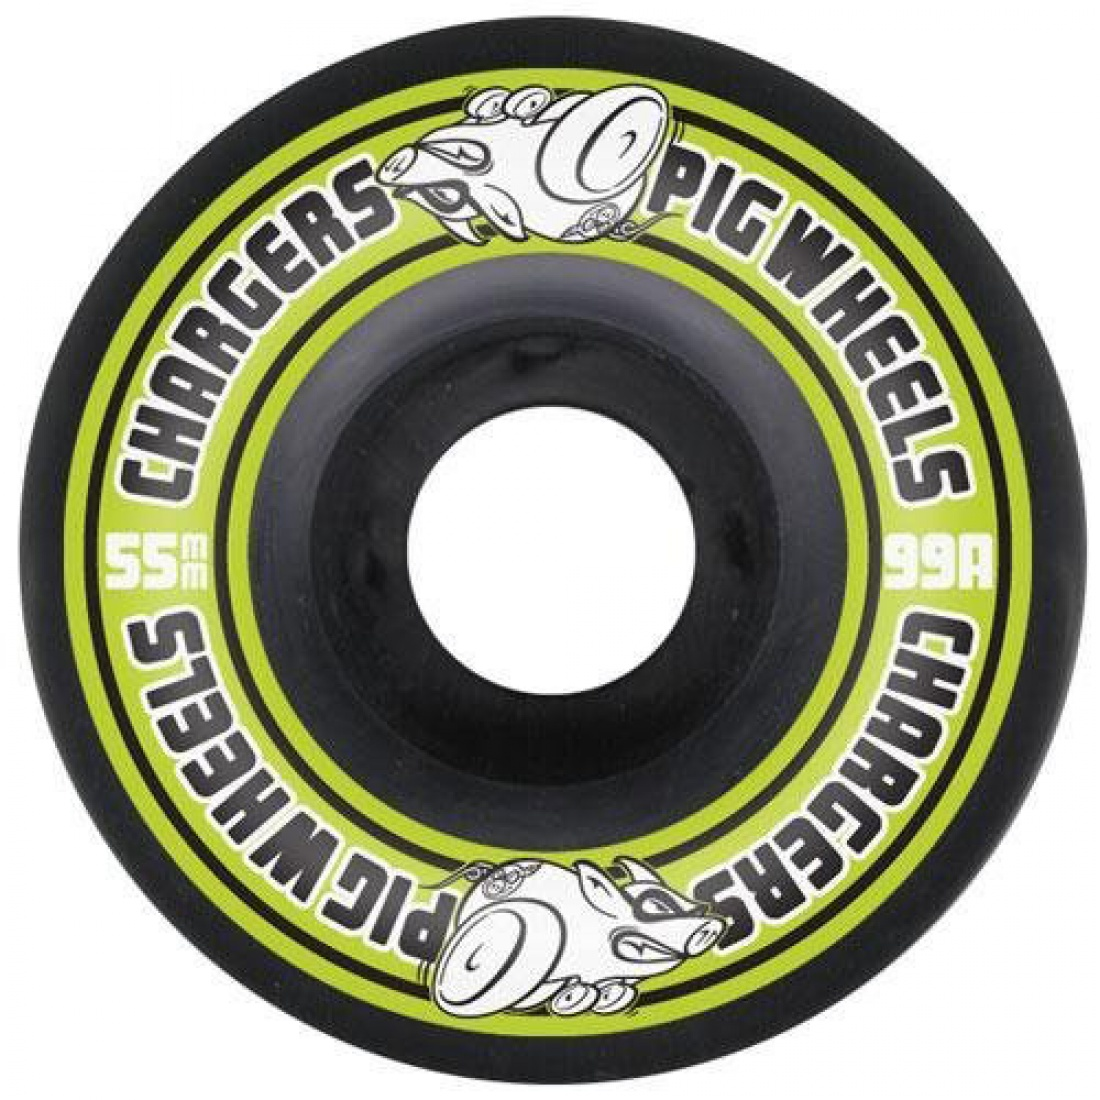 PIG-Charges II Green 55MM Wheels (Set of 4)